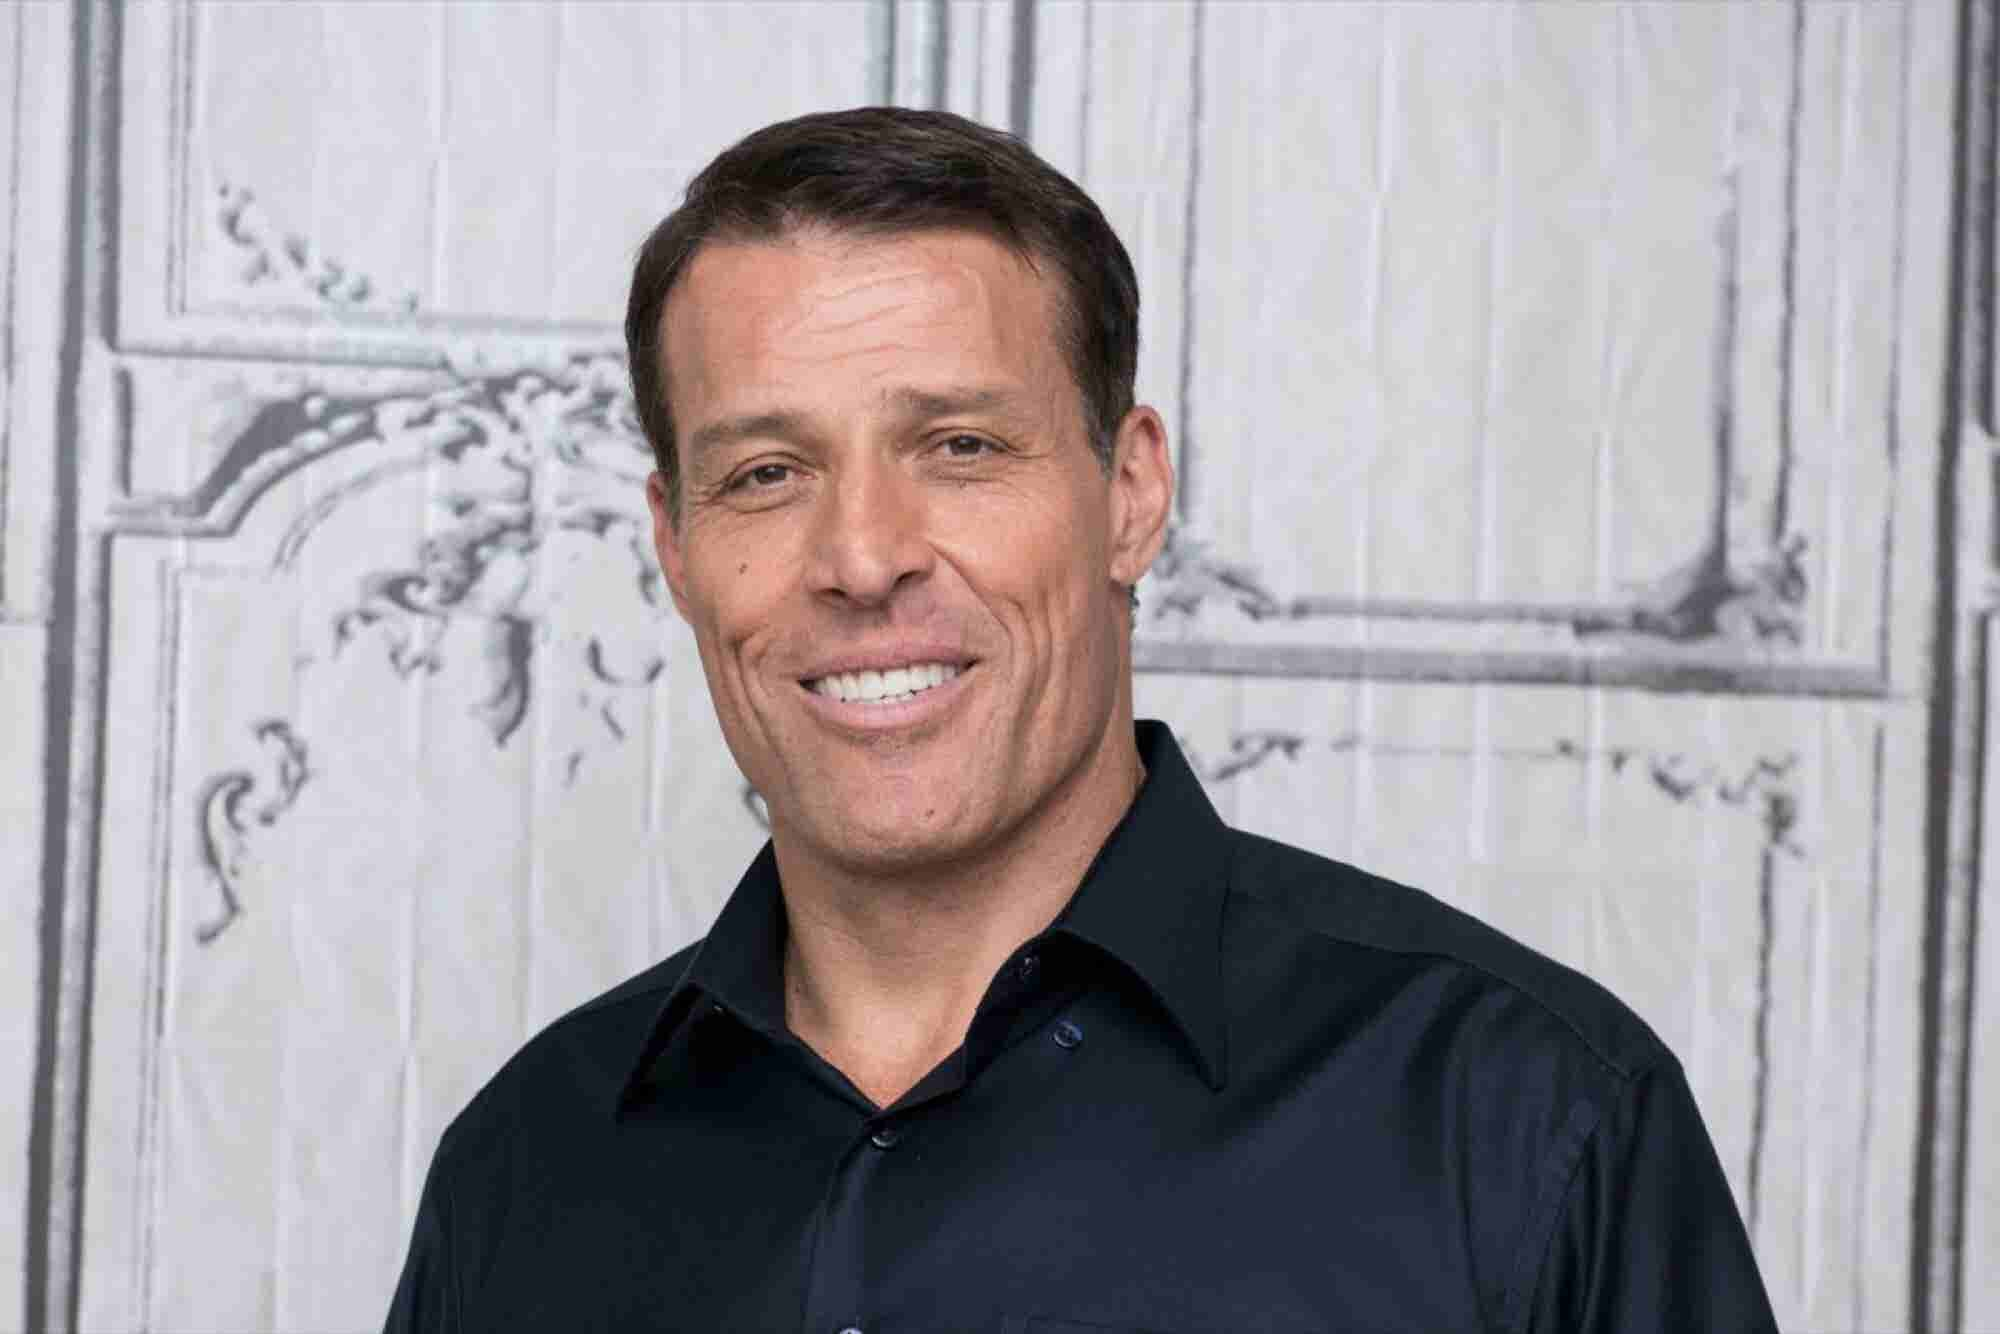 Life Coaching Guru Tony Robbins Tells Us Why He's Investing in an AI Company